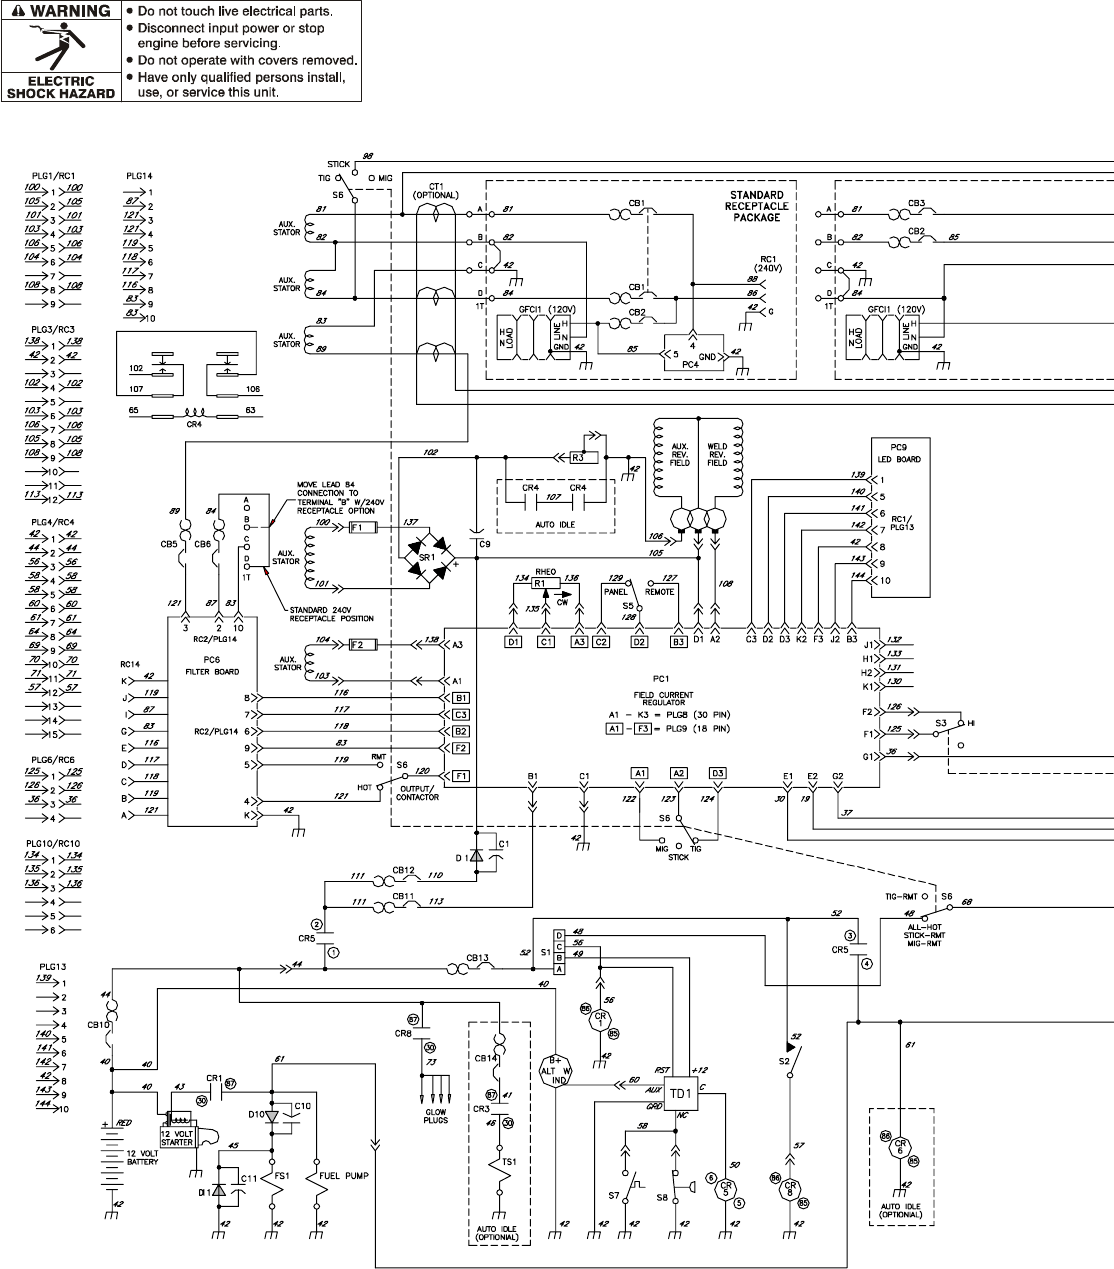 Janitrol Hpt18 60 Thermostat Wiring Diagram